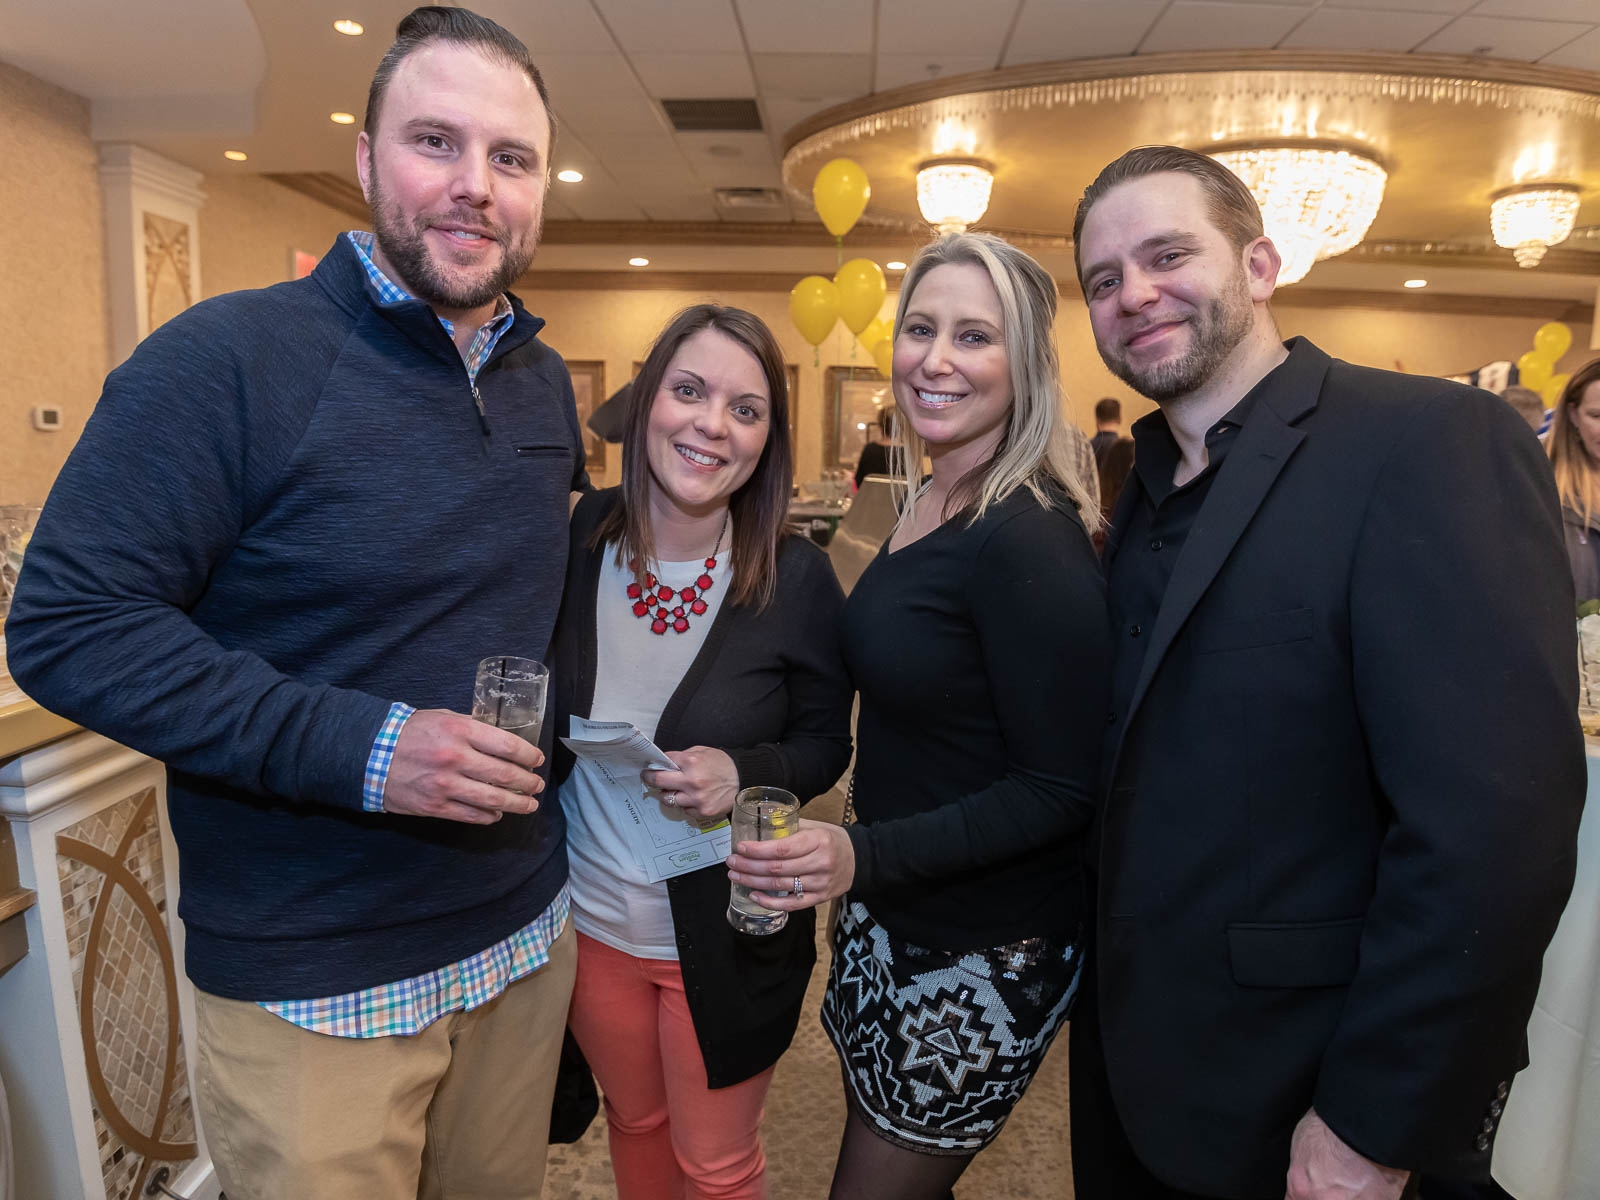 Aspiring chefs from four local BOCES programs showcased their talents on Wednesday, March 13, 2019, at Salvatore's Italian Gardens. An